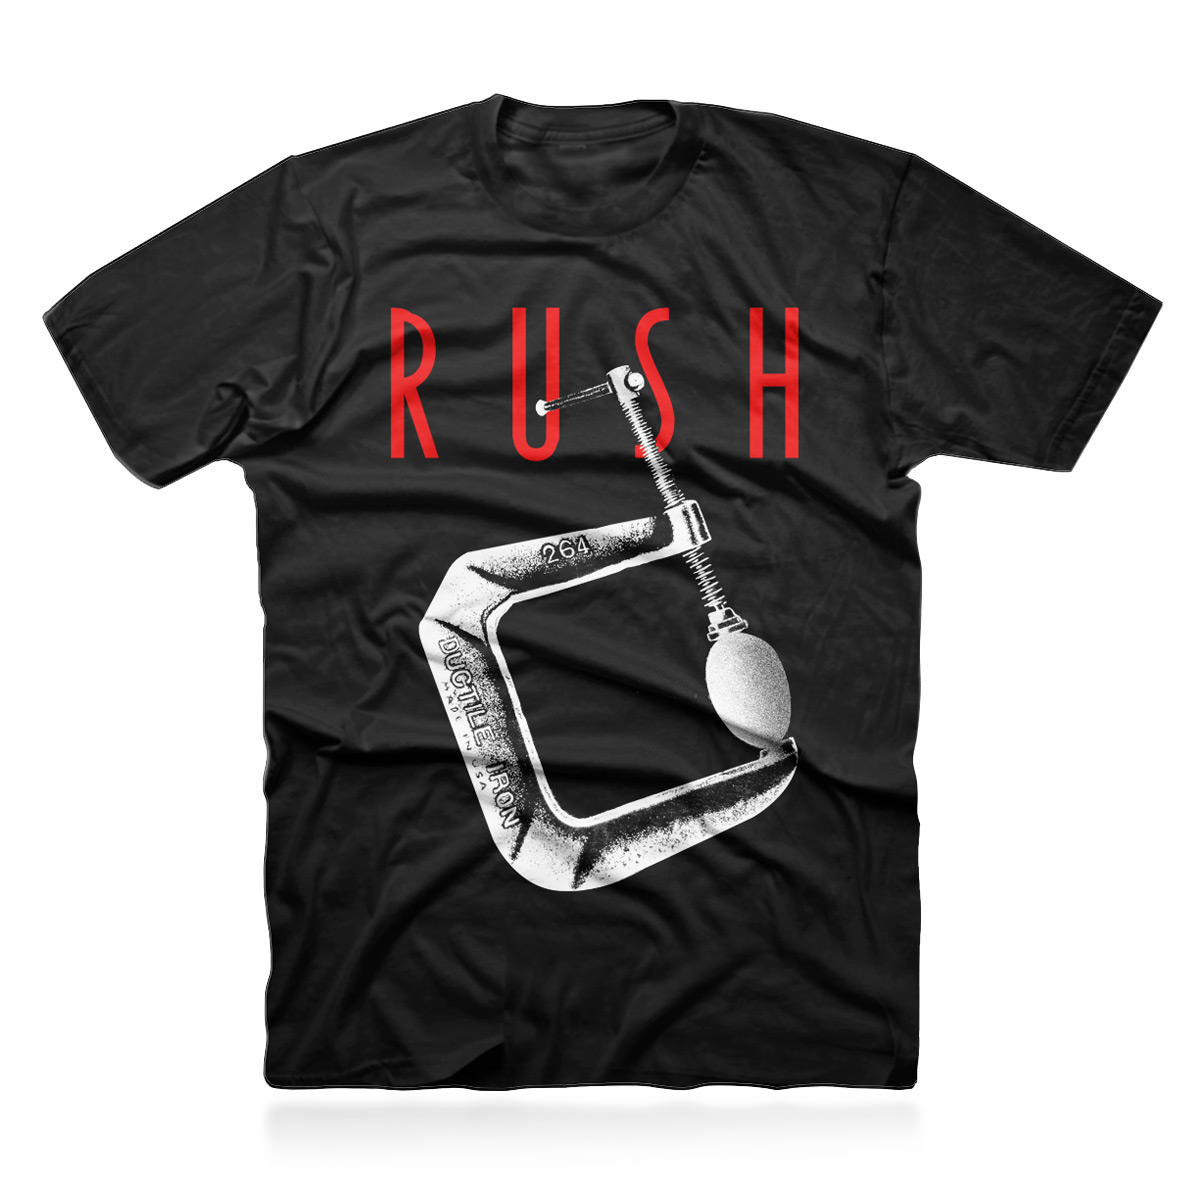 Rush Vault Grace Under Pressure T-Shirt